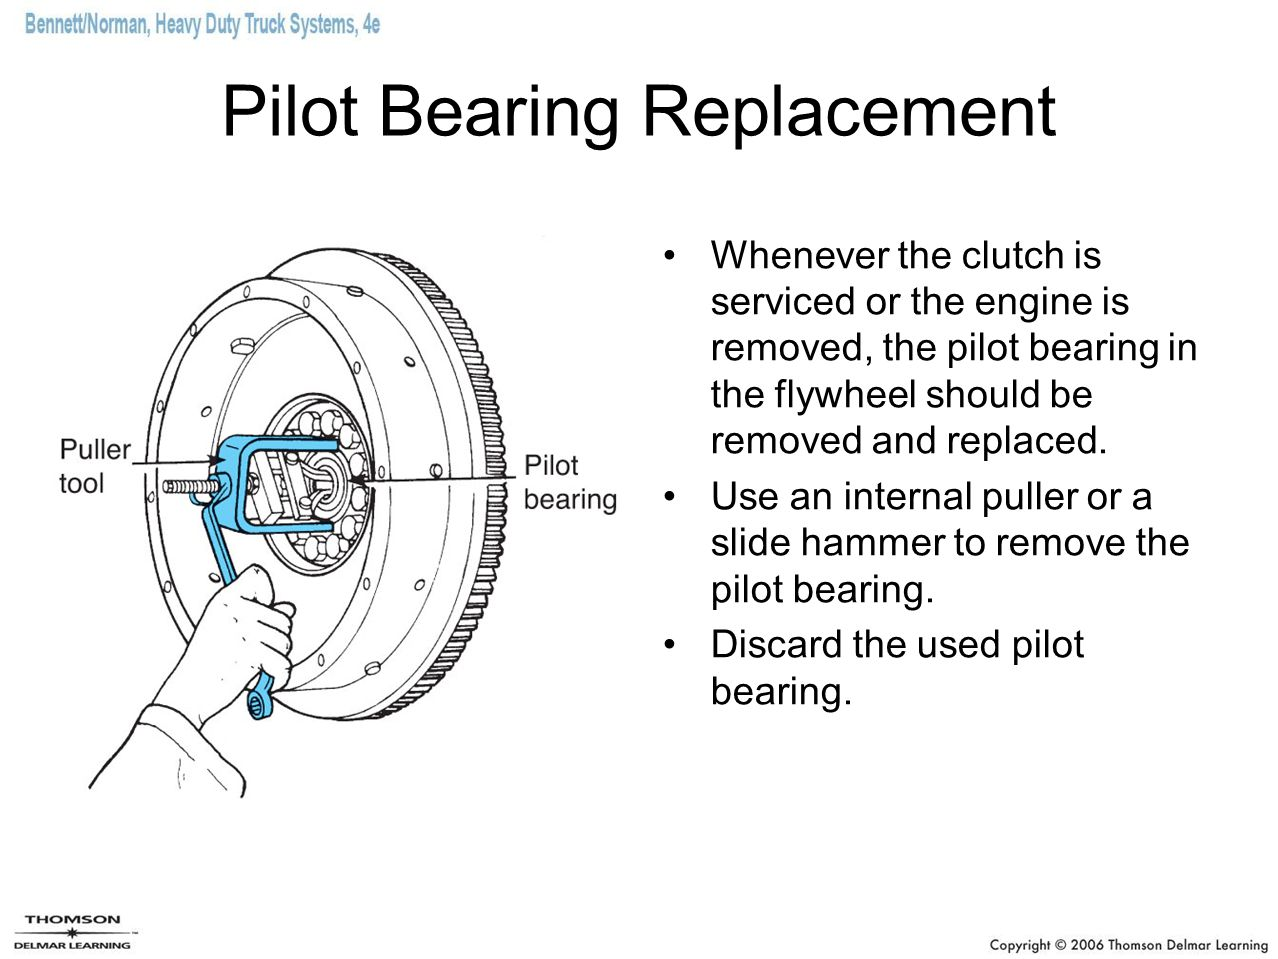 Pilot Bearing Replacement